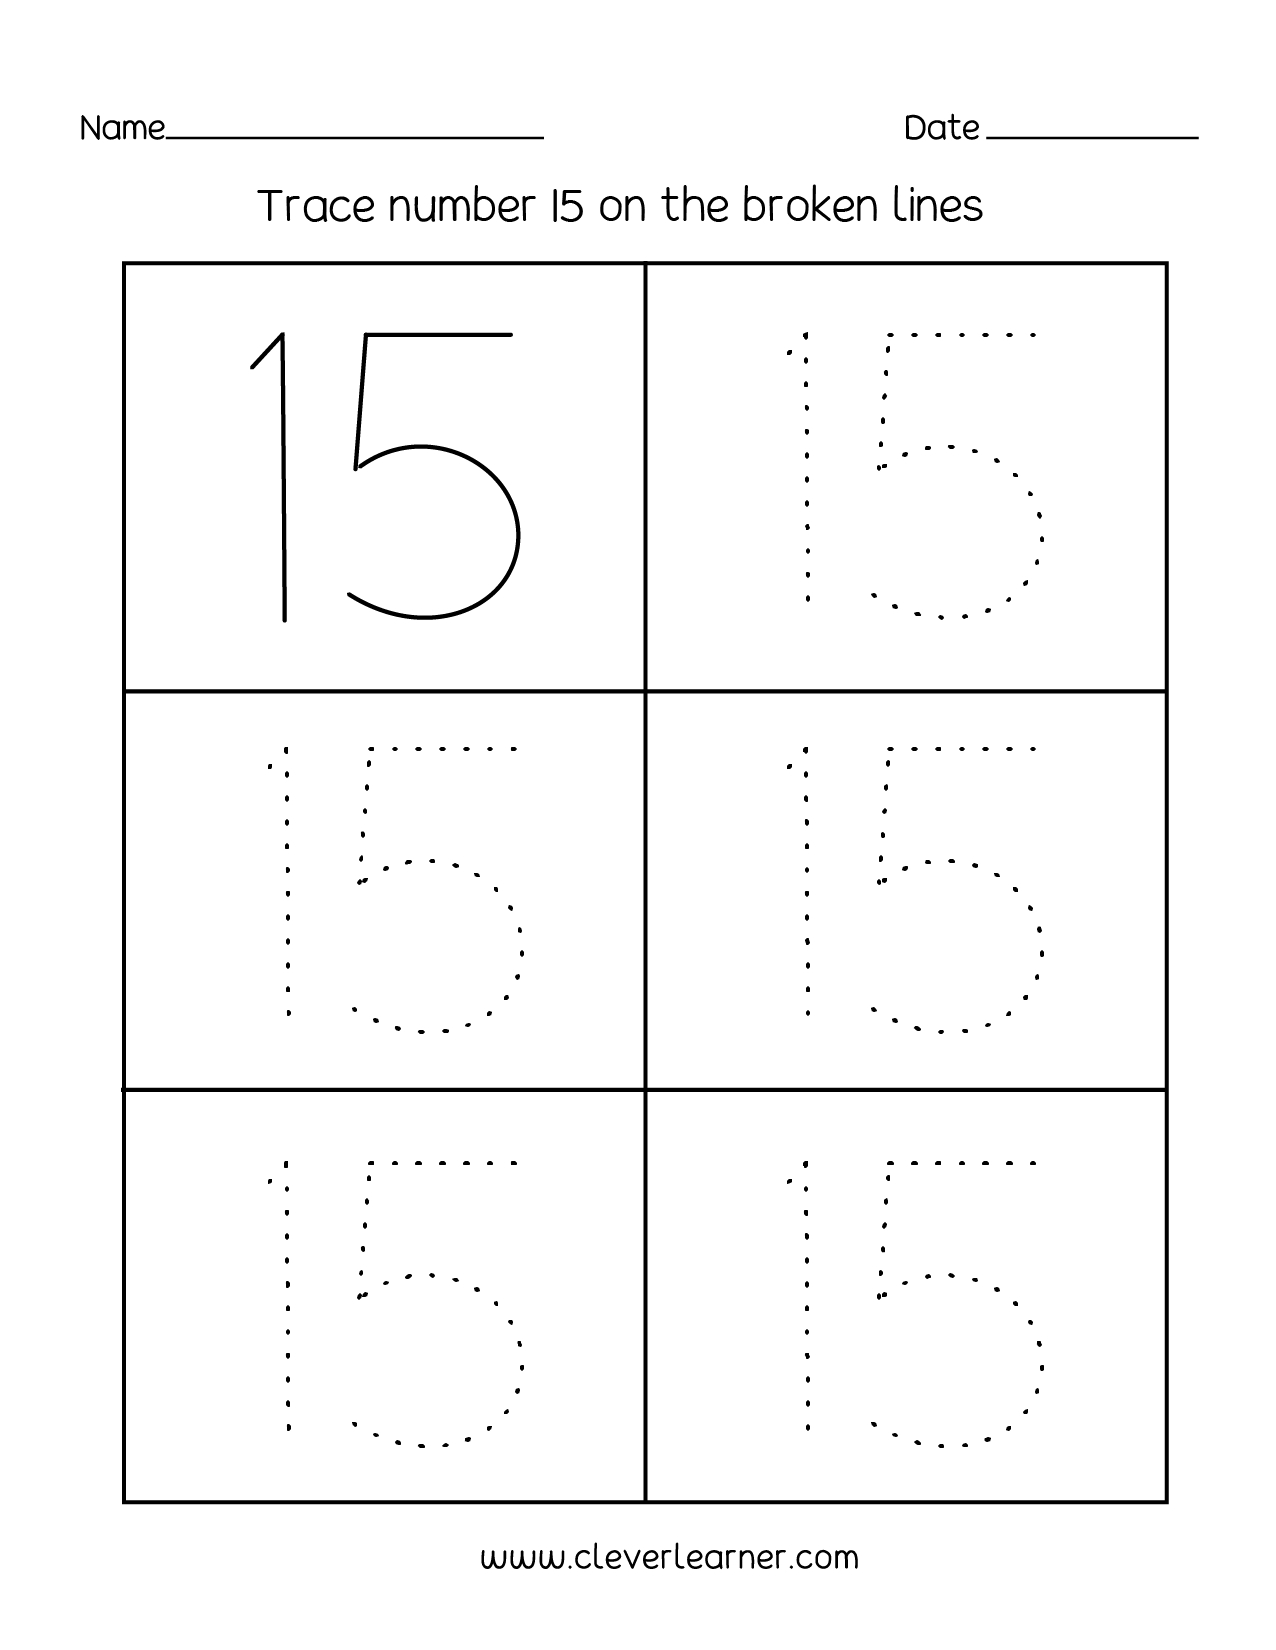 Number 15 Writing, Counting And Identification Printable Worksheets | Printable Number Tracing Worksheets For Kindergarten